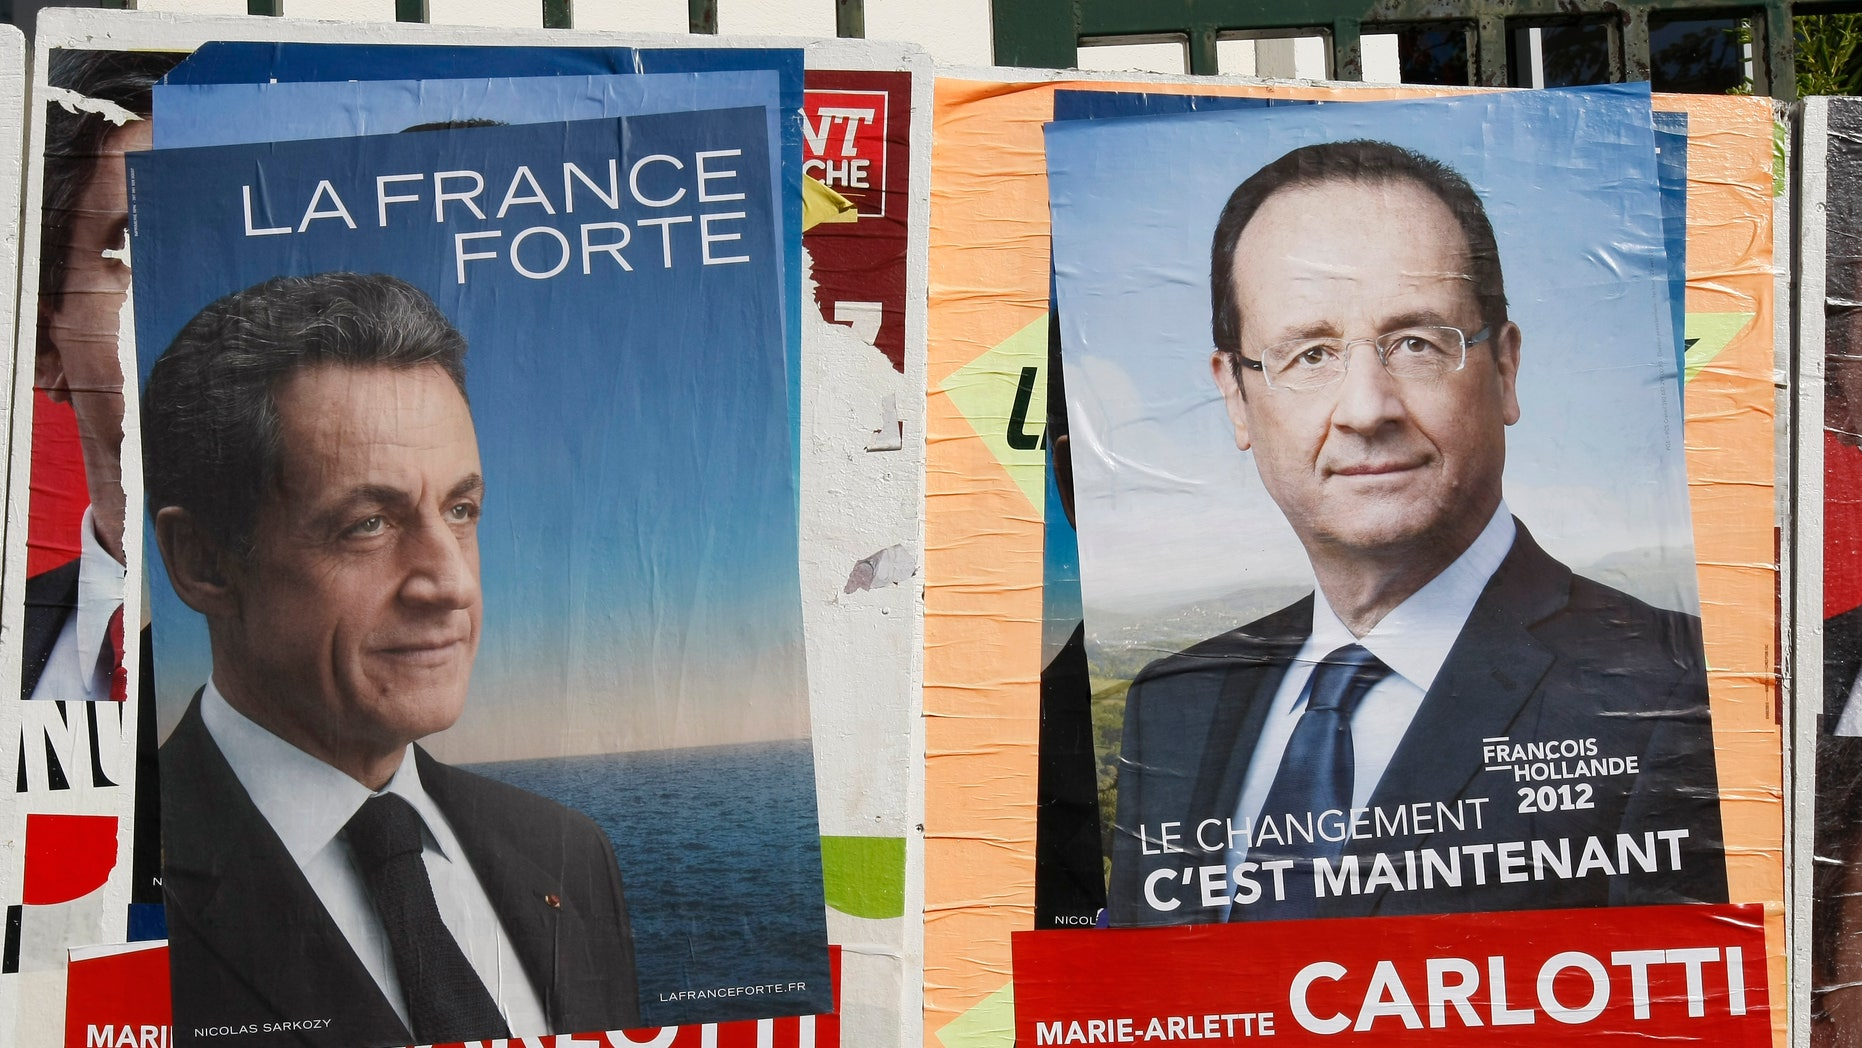 April 26, 2012: Posters of France's Socialist Party candidate Francois Hollande,  and France's President and candidate for re-election, in the 2012 French presidential election, Nicolas Sarkozy, are posted in front of a school, in Marseille, southern France.